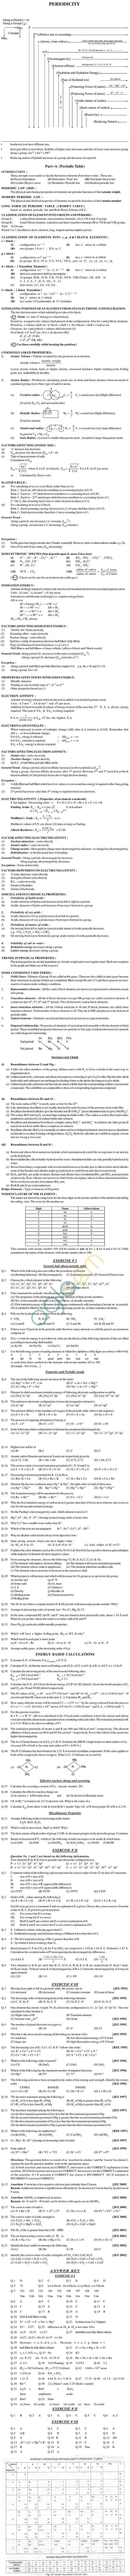 Chemistry Study Material - Chapter 18